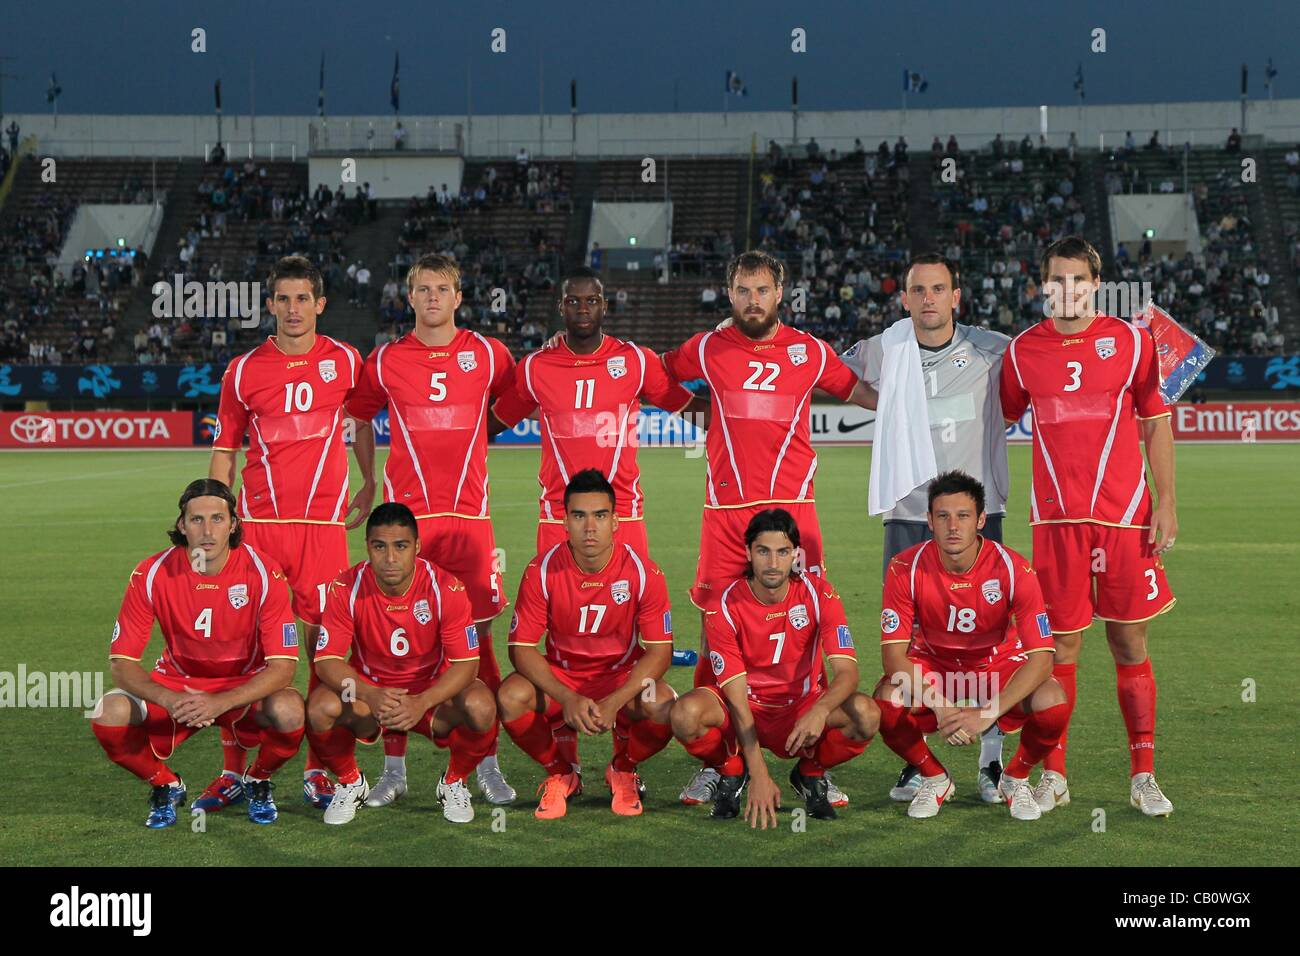 Adelaide United Fc Team Group May 16 2012 Football Afc Stock Photo Alamy